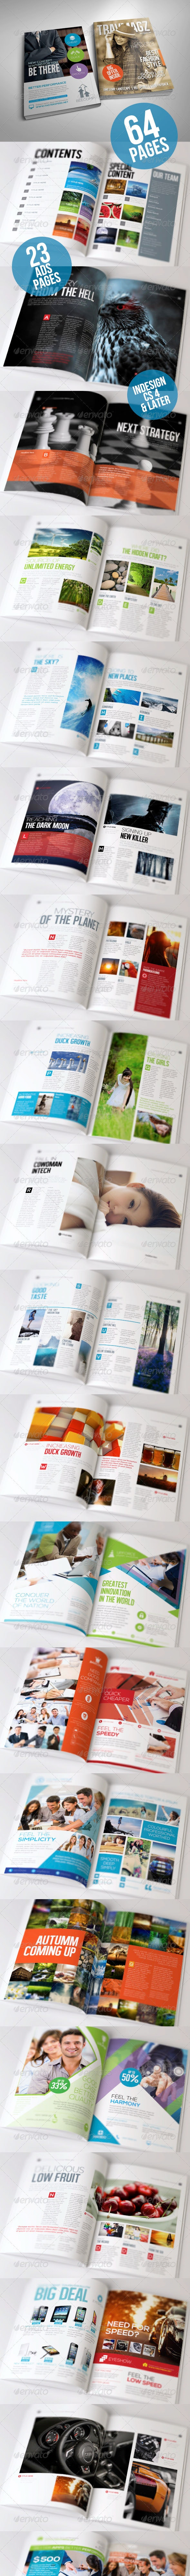 Simple Magazine Volume II - Magazines Print Templates